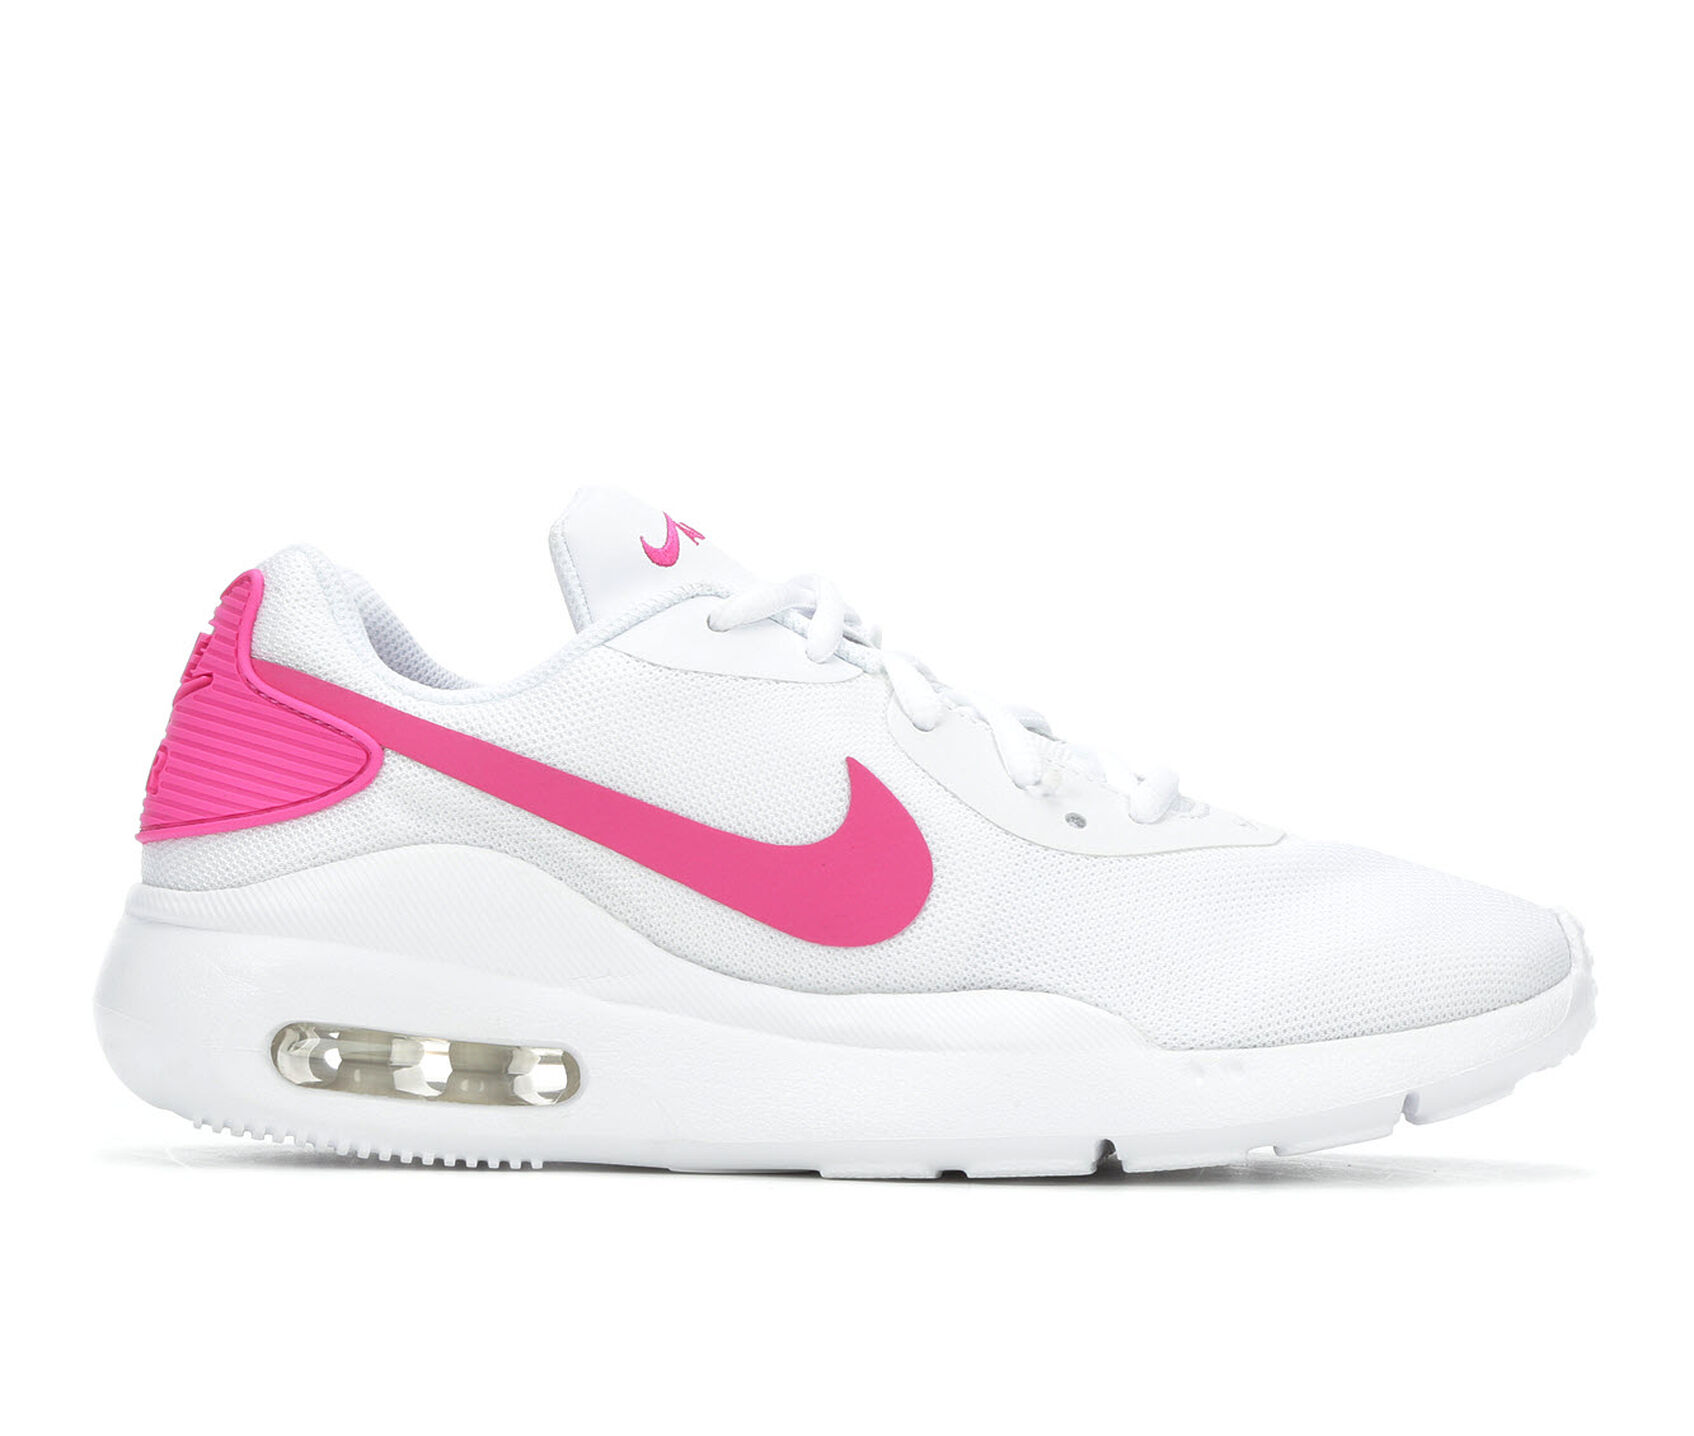 half off c50f0 e75d0 ... Nike Air Max Oketo Sneakers. Previous